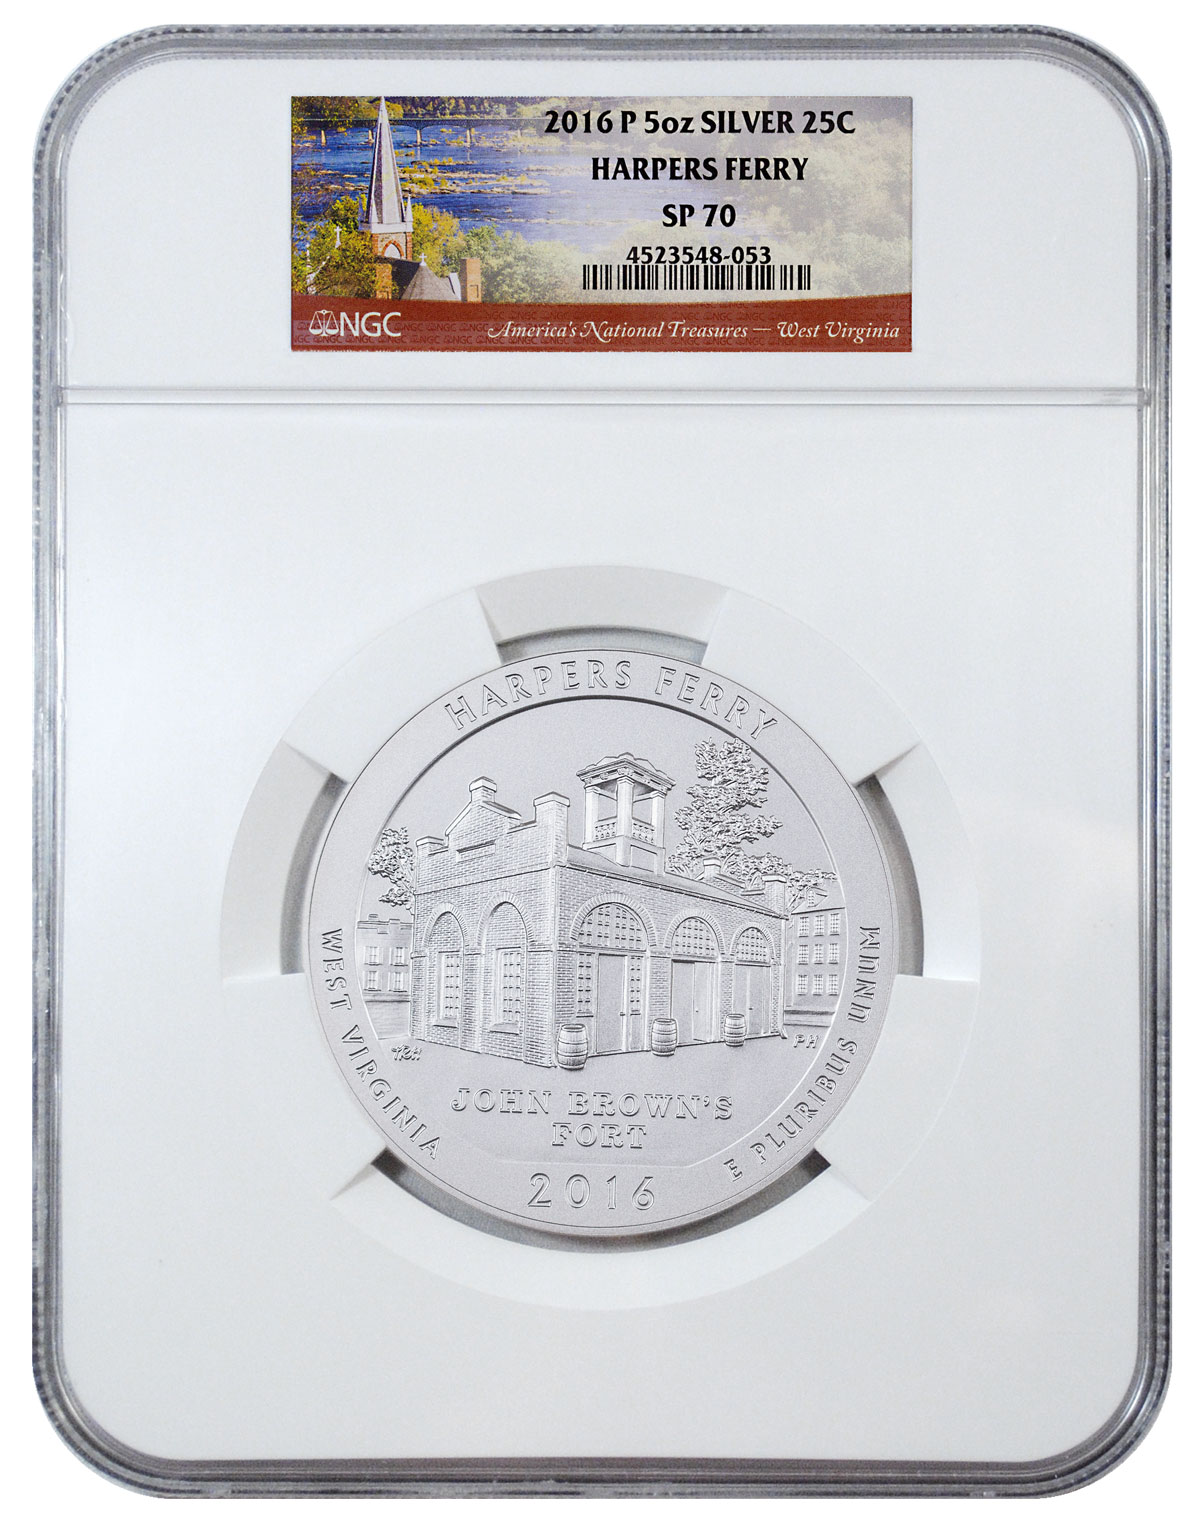 2016-P Harpers Ferry 5 oz. Silver America the Beautiful Specimen Coin NGC SP70